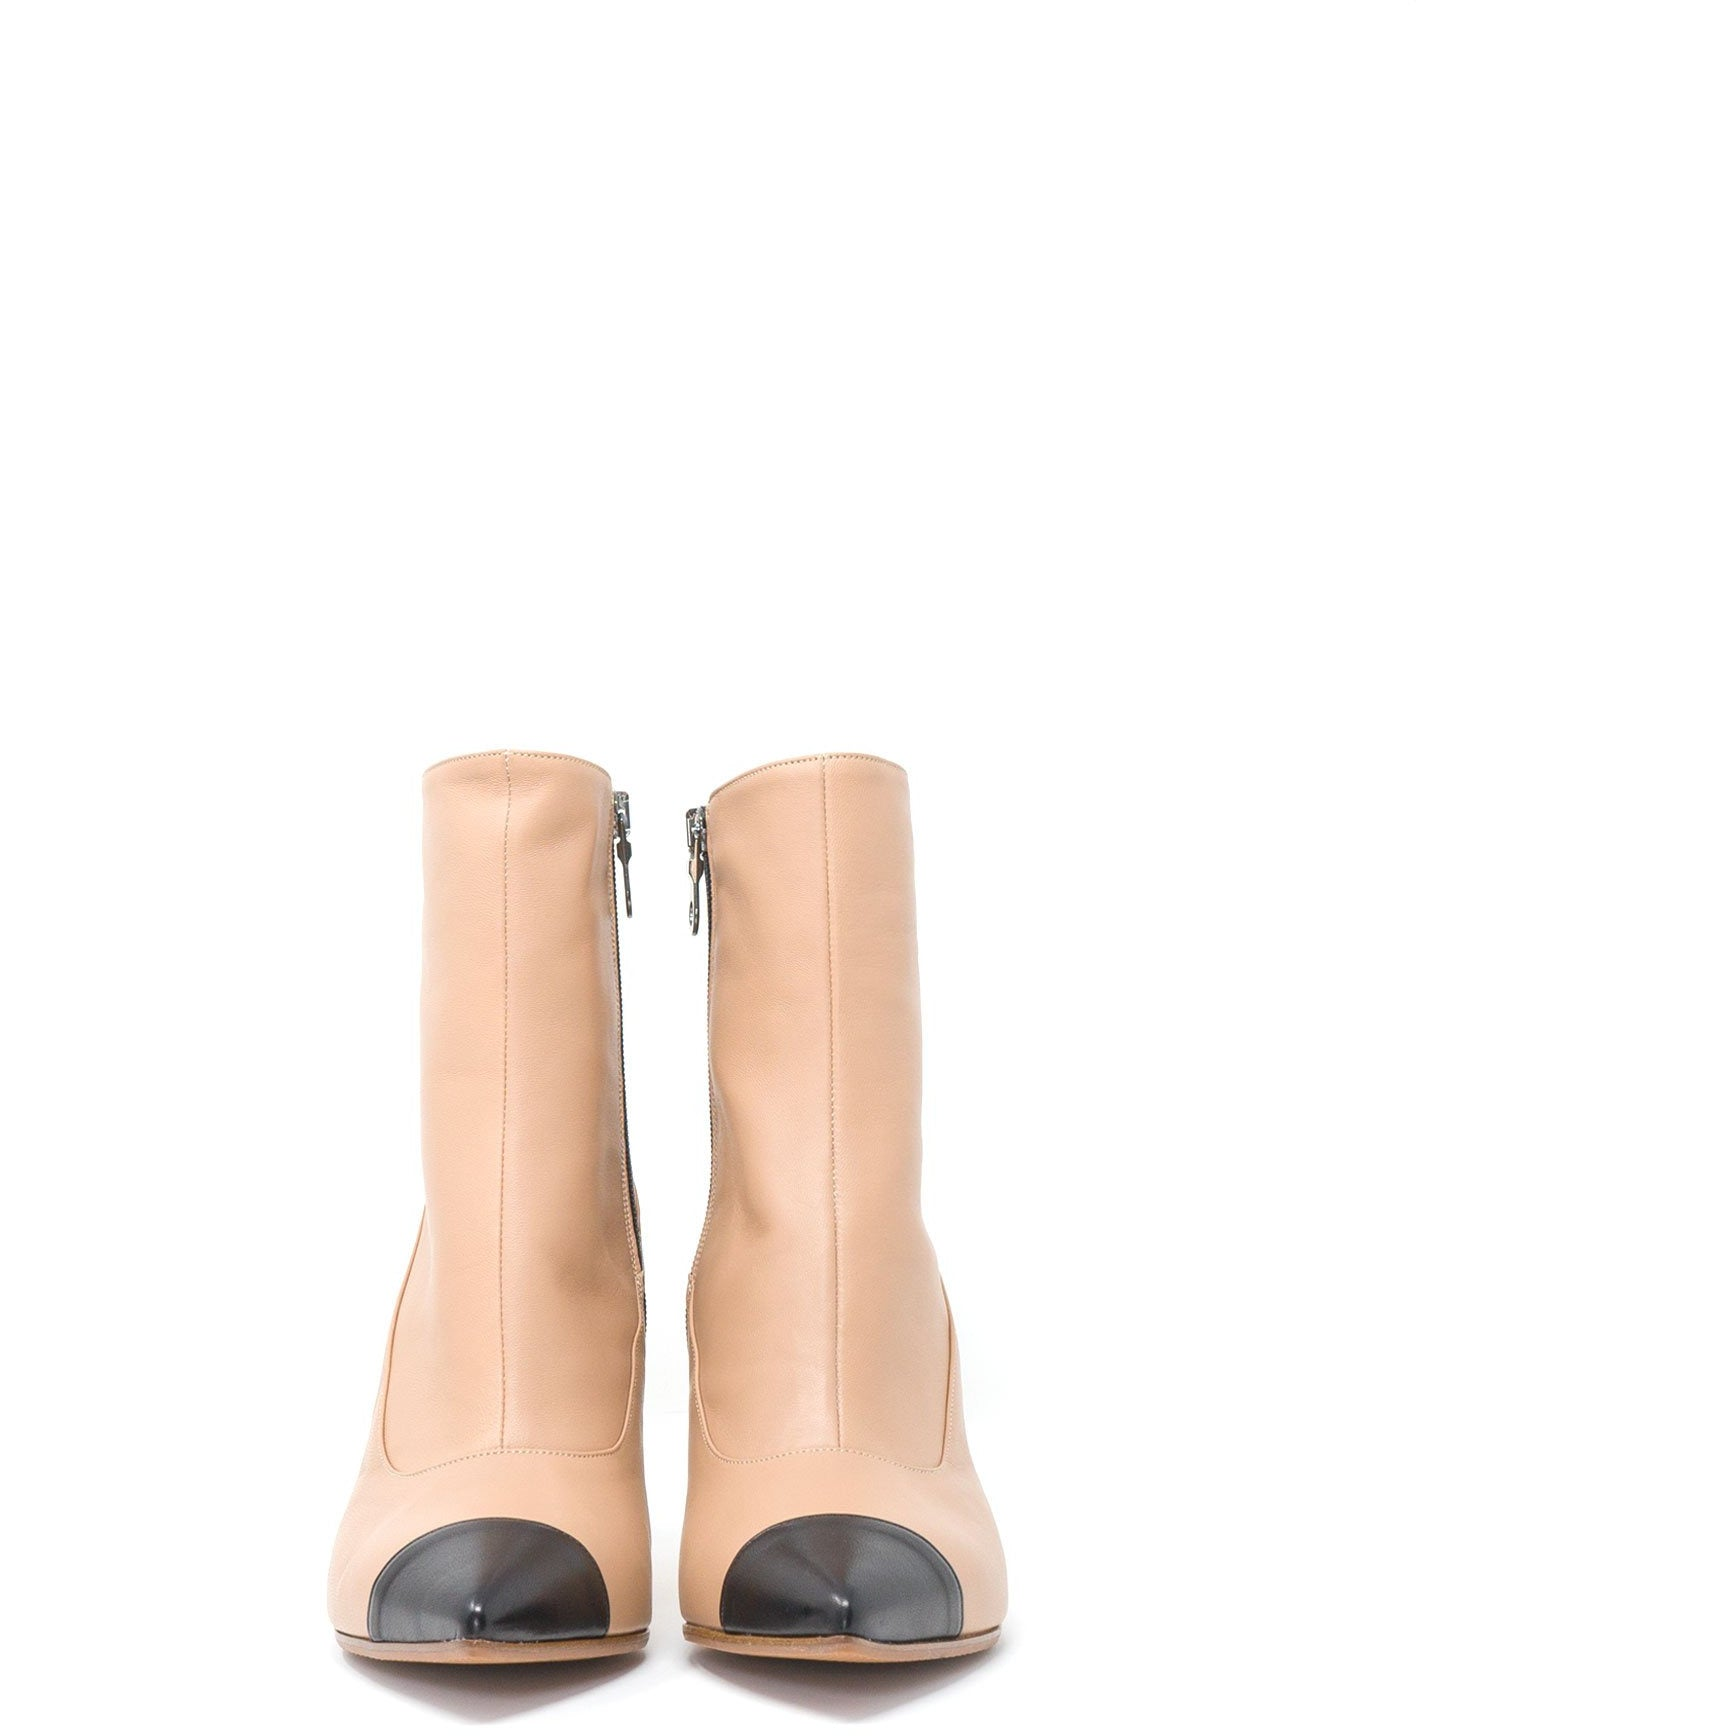 DDL4612 T70 Women Booties in Beige - Jennifer Tattanelli